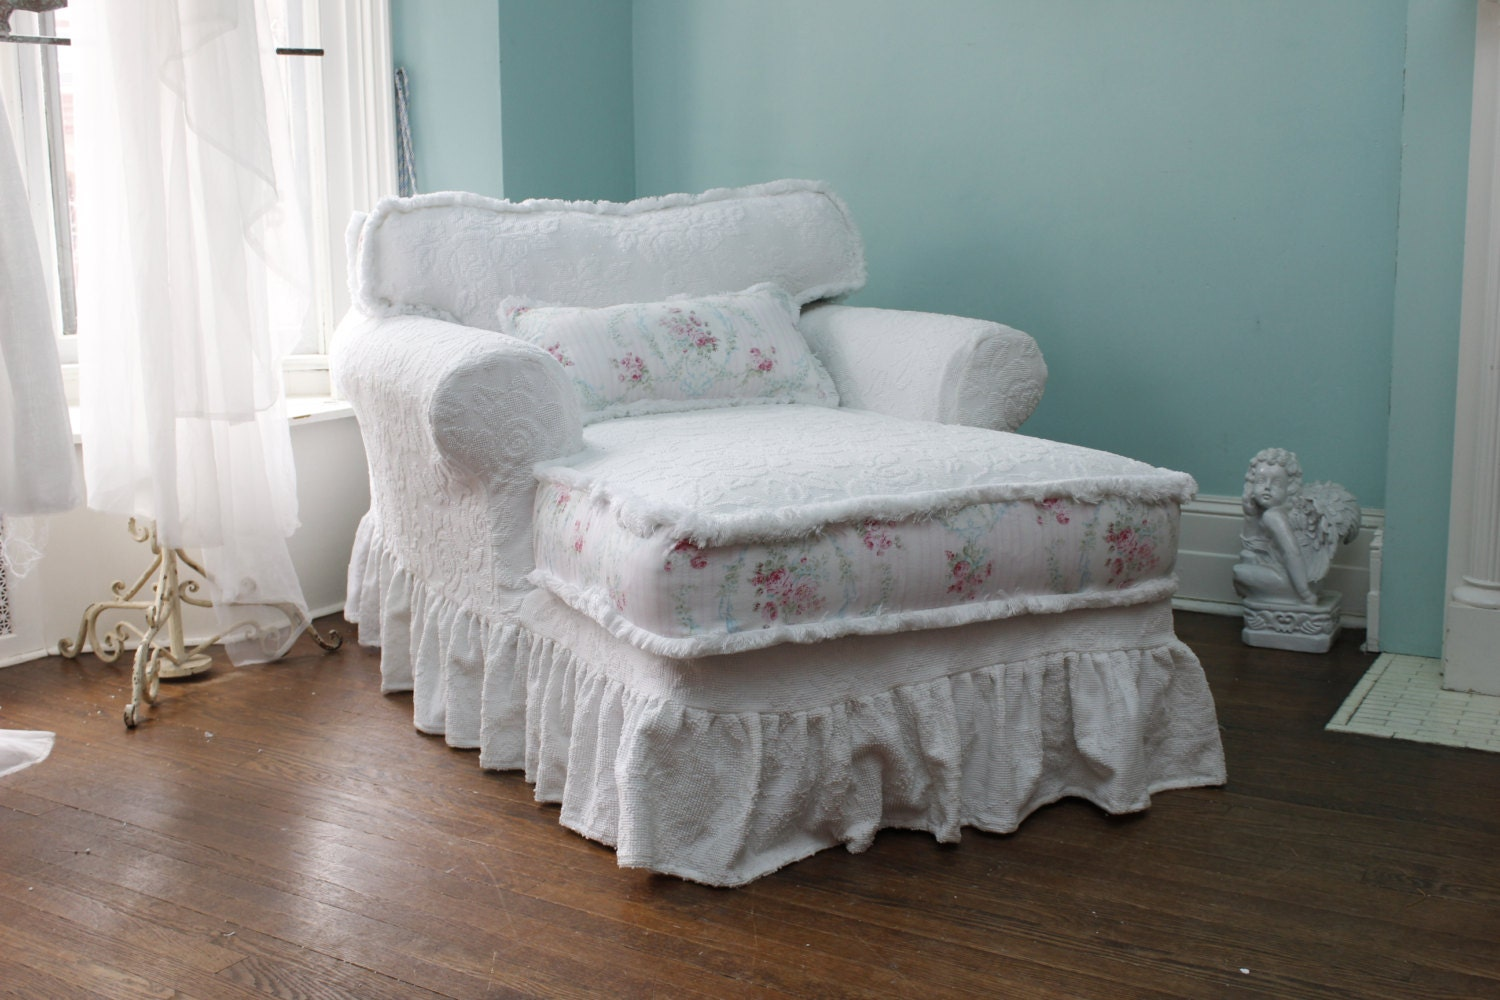 custom order chaise lounge shabby chic slipcovered white roses. Black Bedroom Furniture Sets. Home Design Ideas